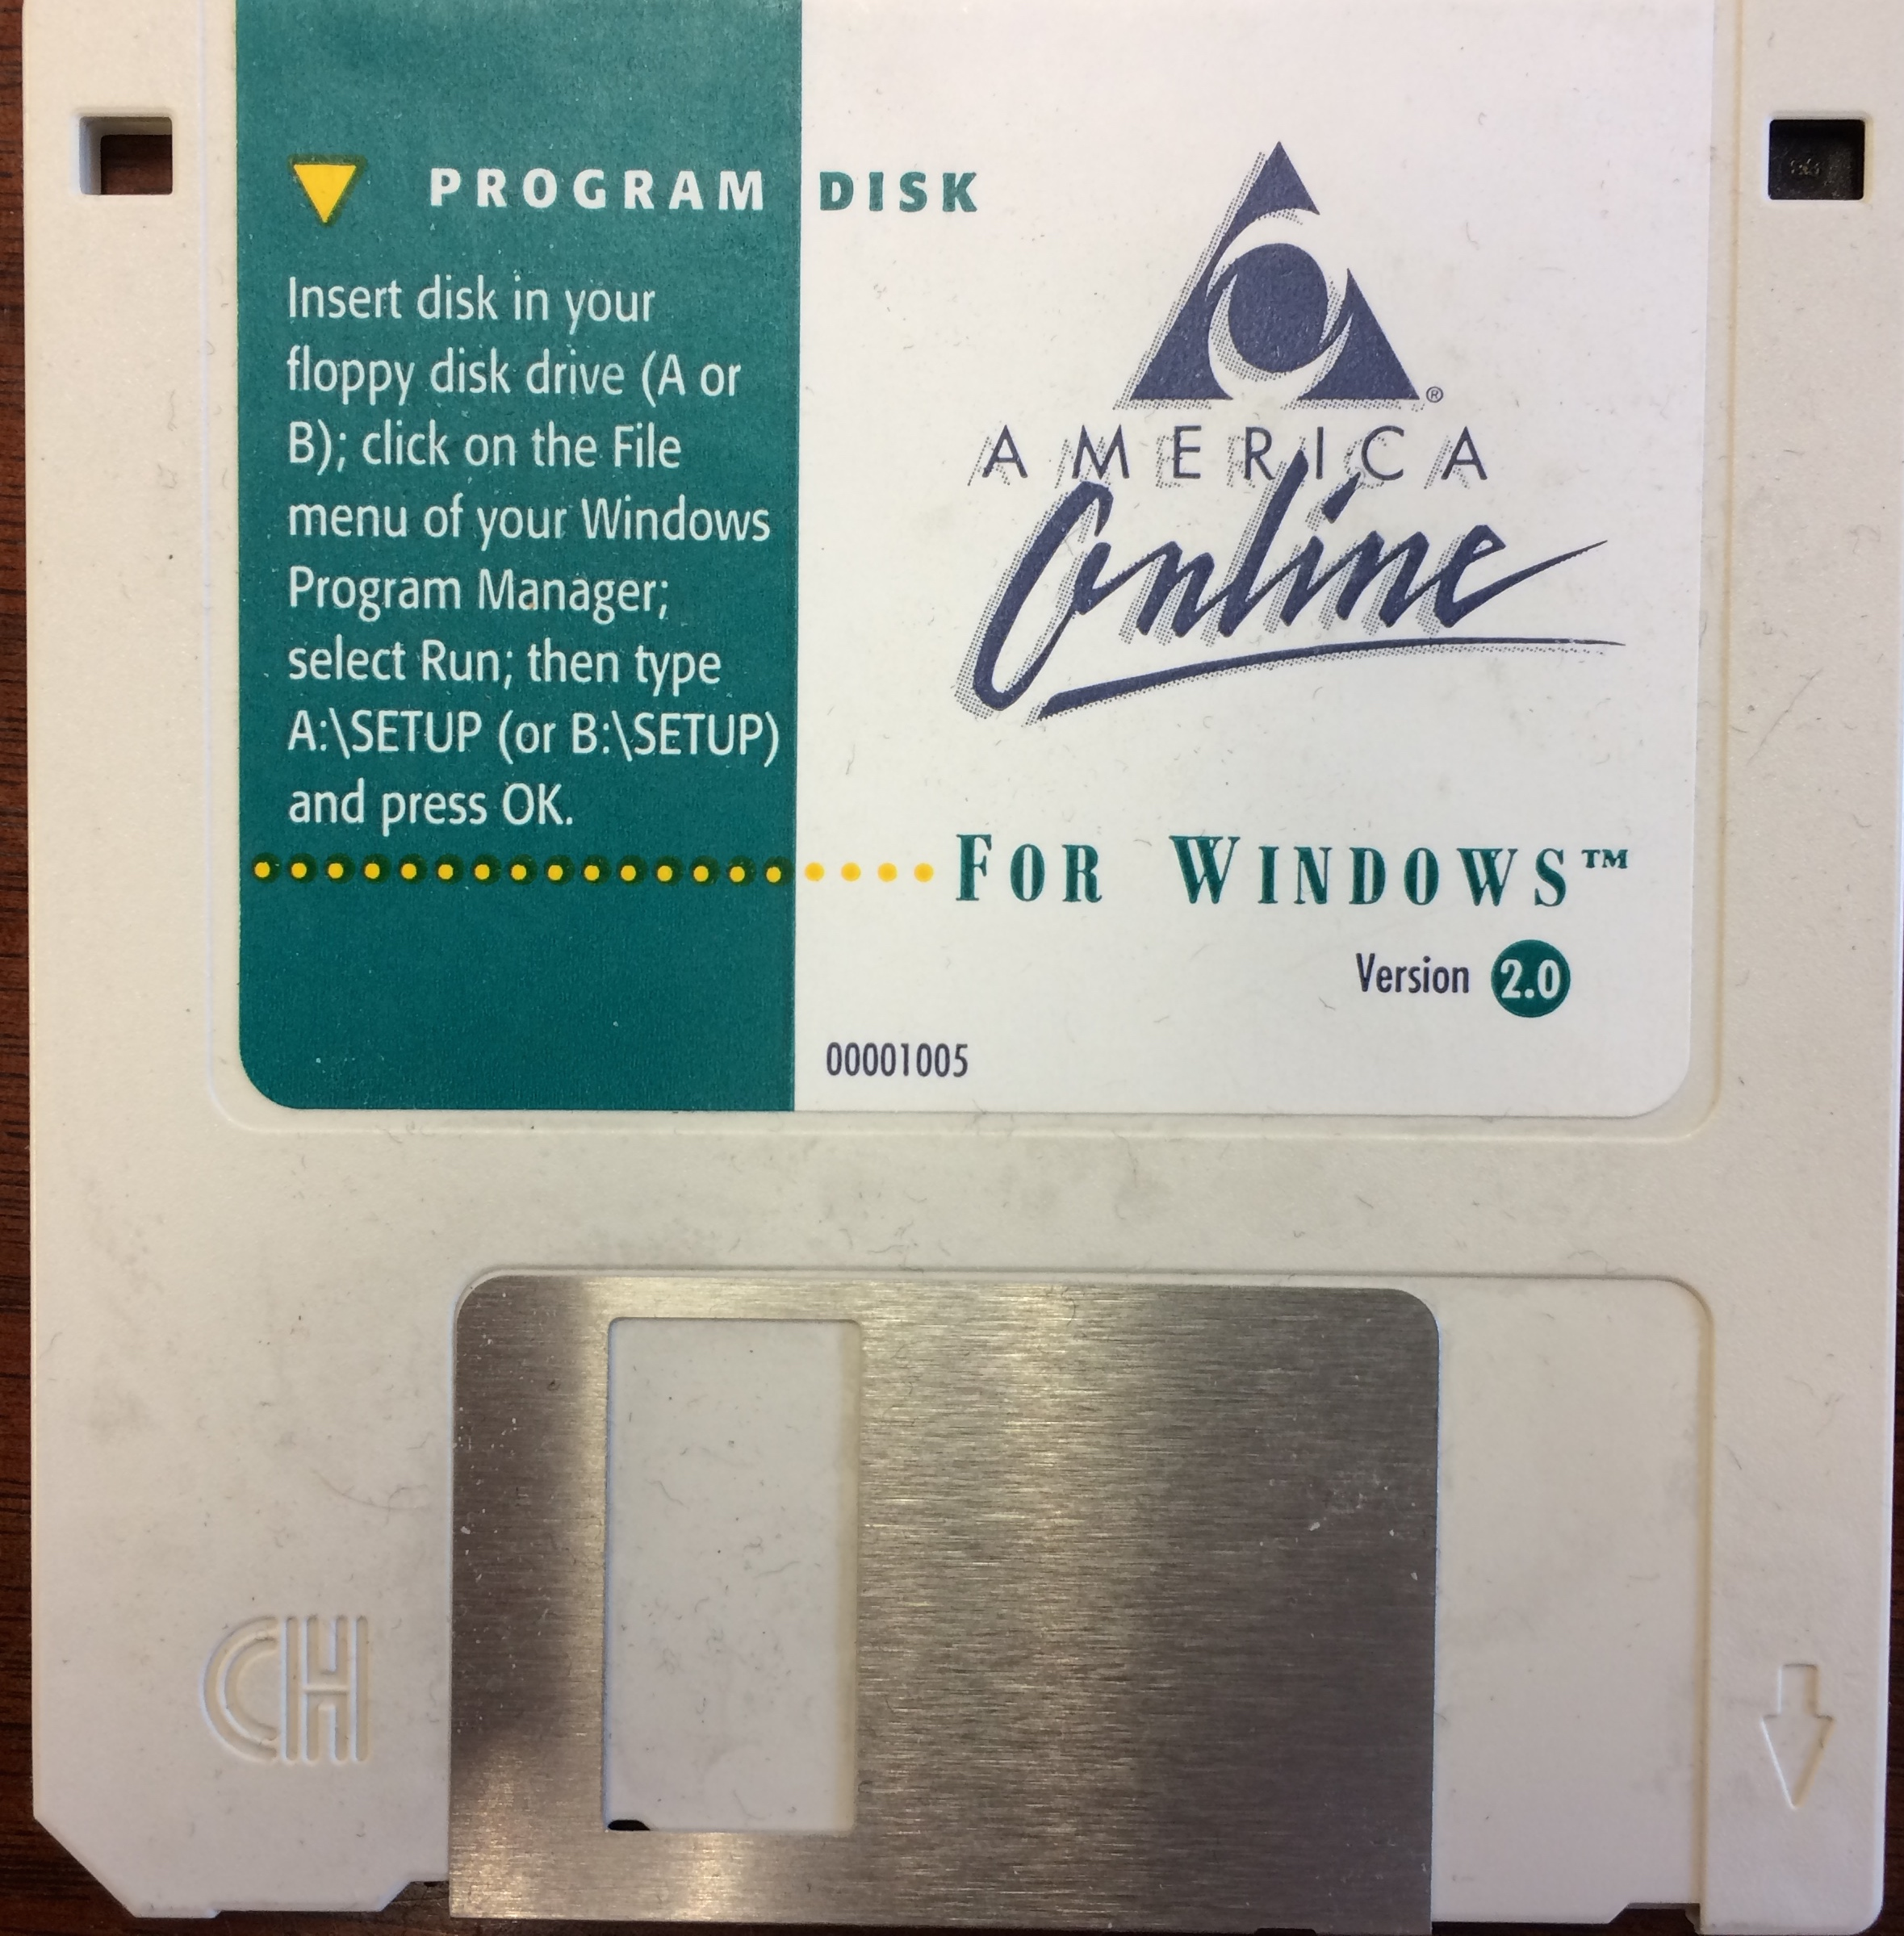 The AOL 2.0 floppy disk that I use as a drink coaster. Photo credit: me.